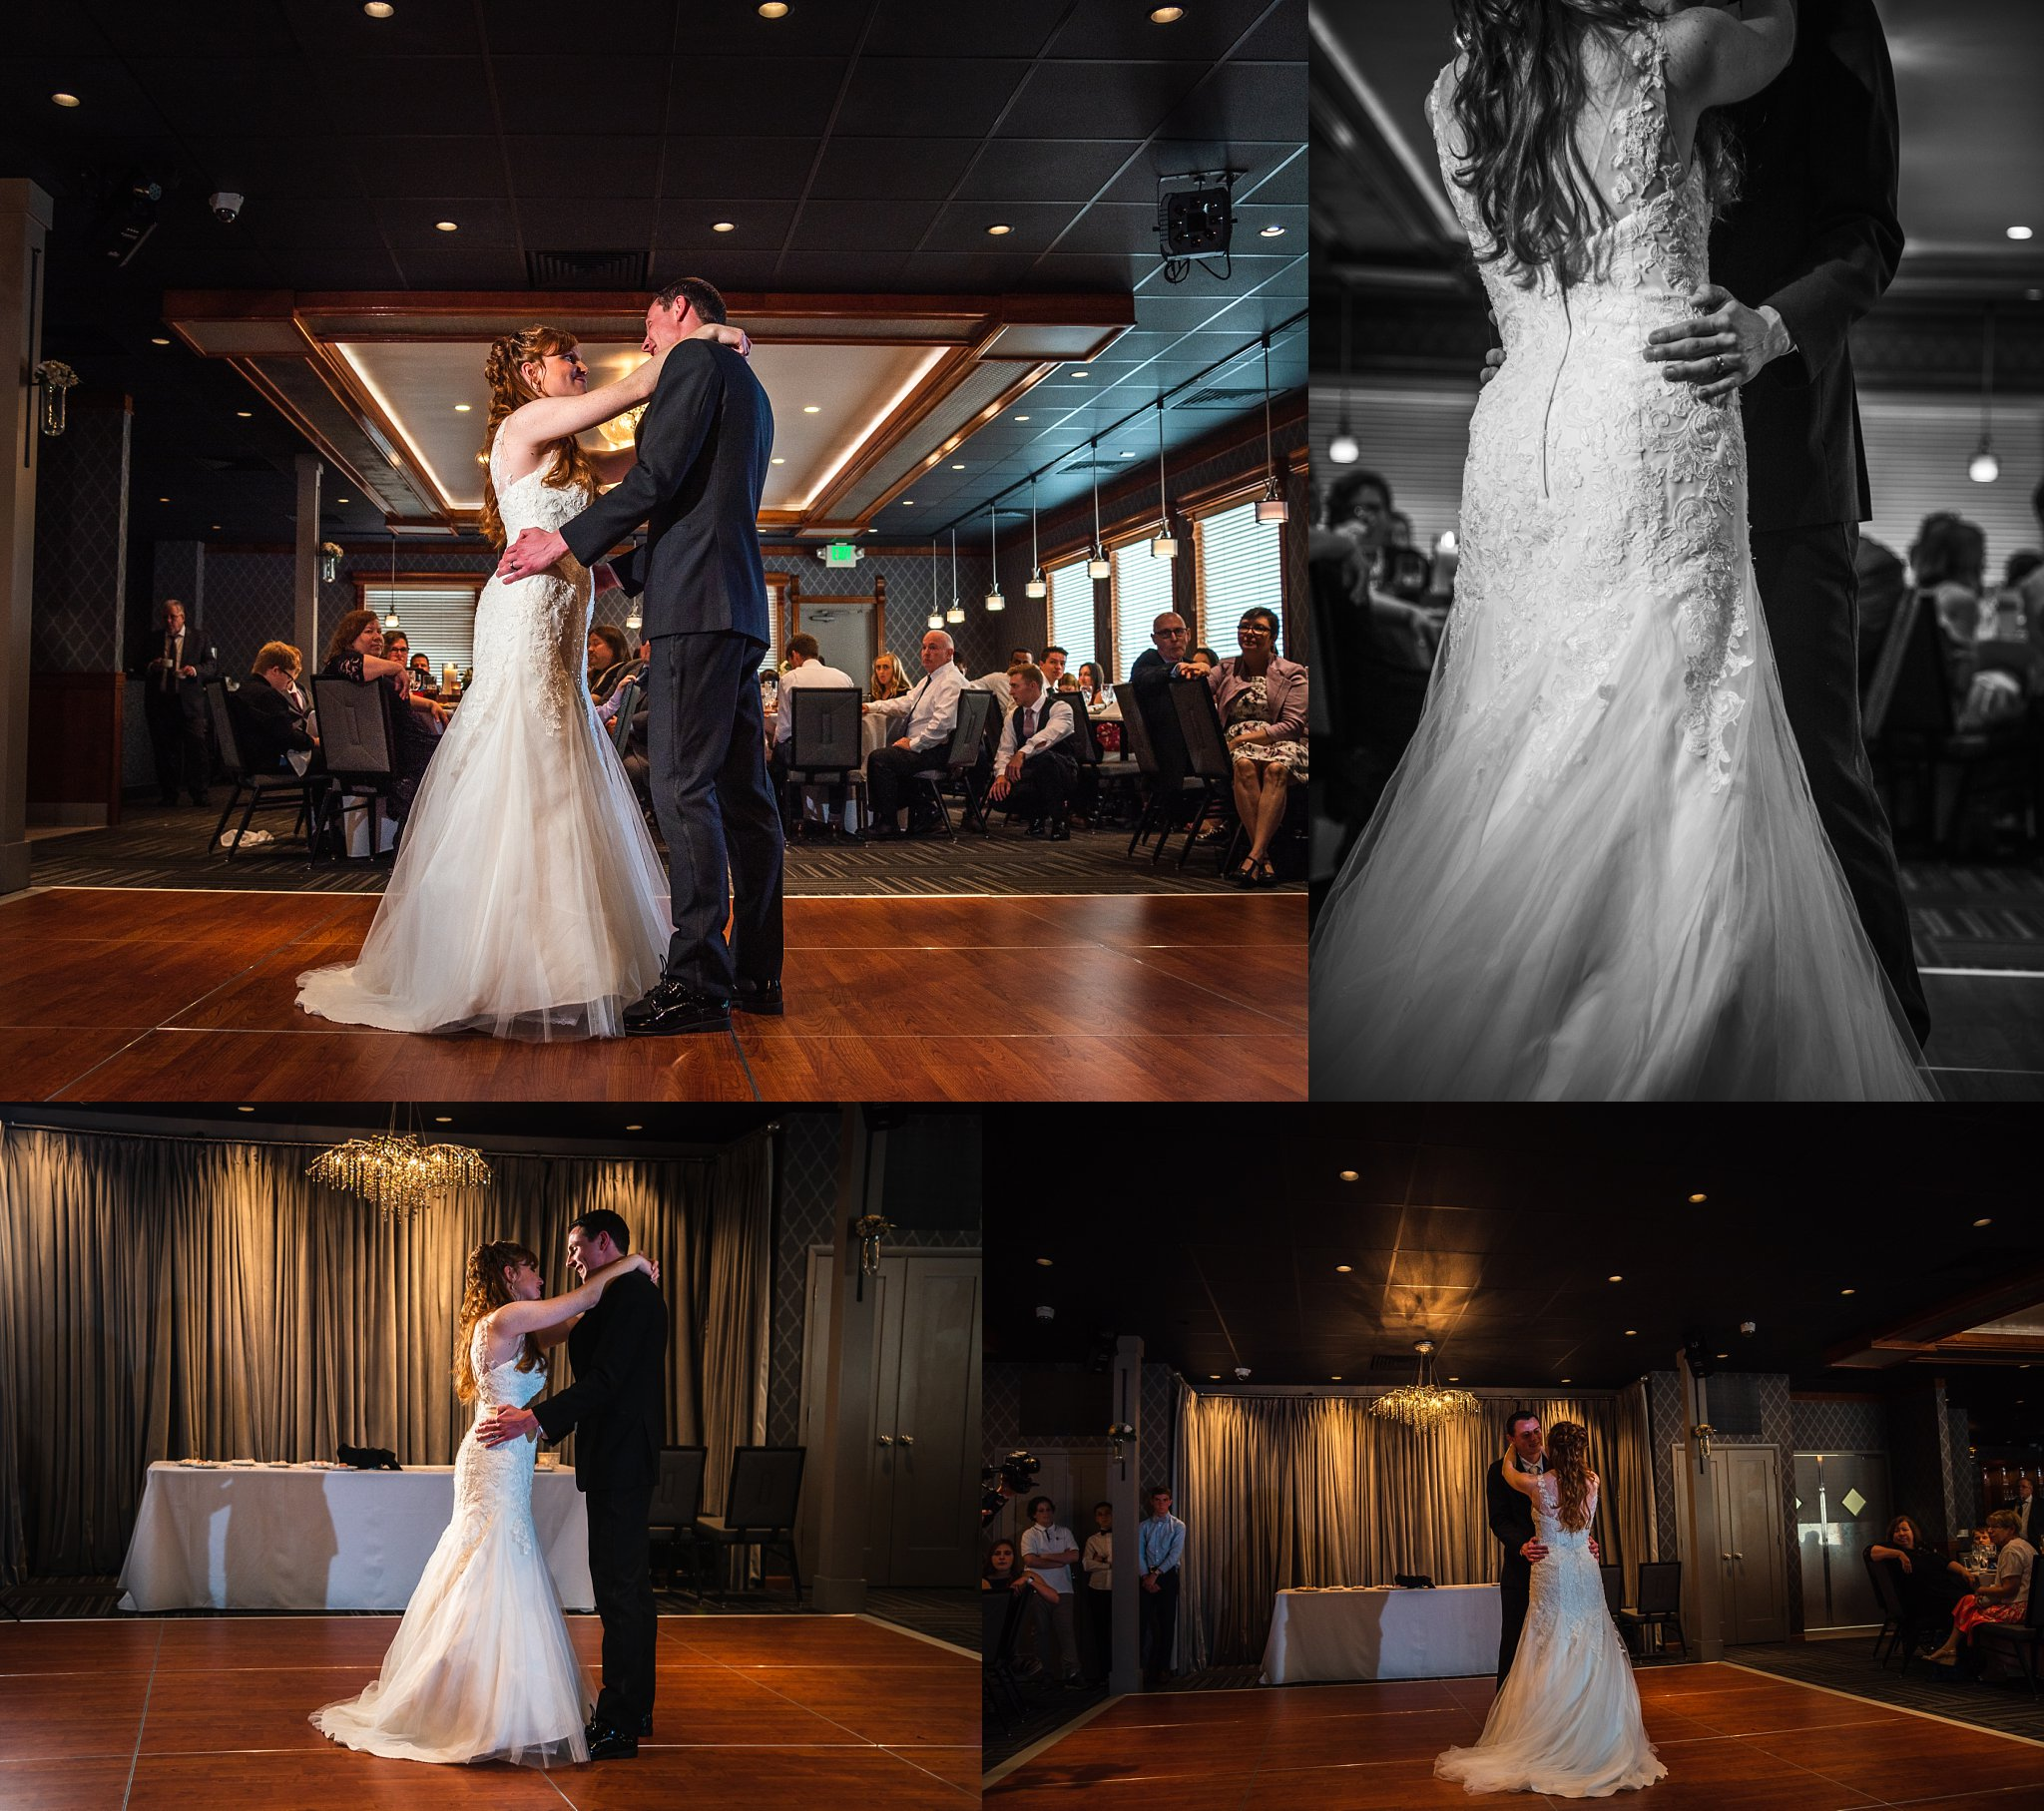 Sarah & Lucas held their wedding reception at The Supper Club, also in Niles, Michigan just 10 minutes away for the chapel.